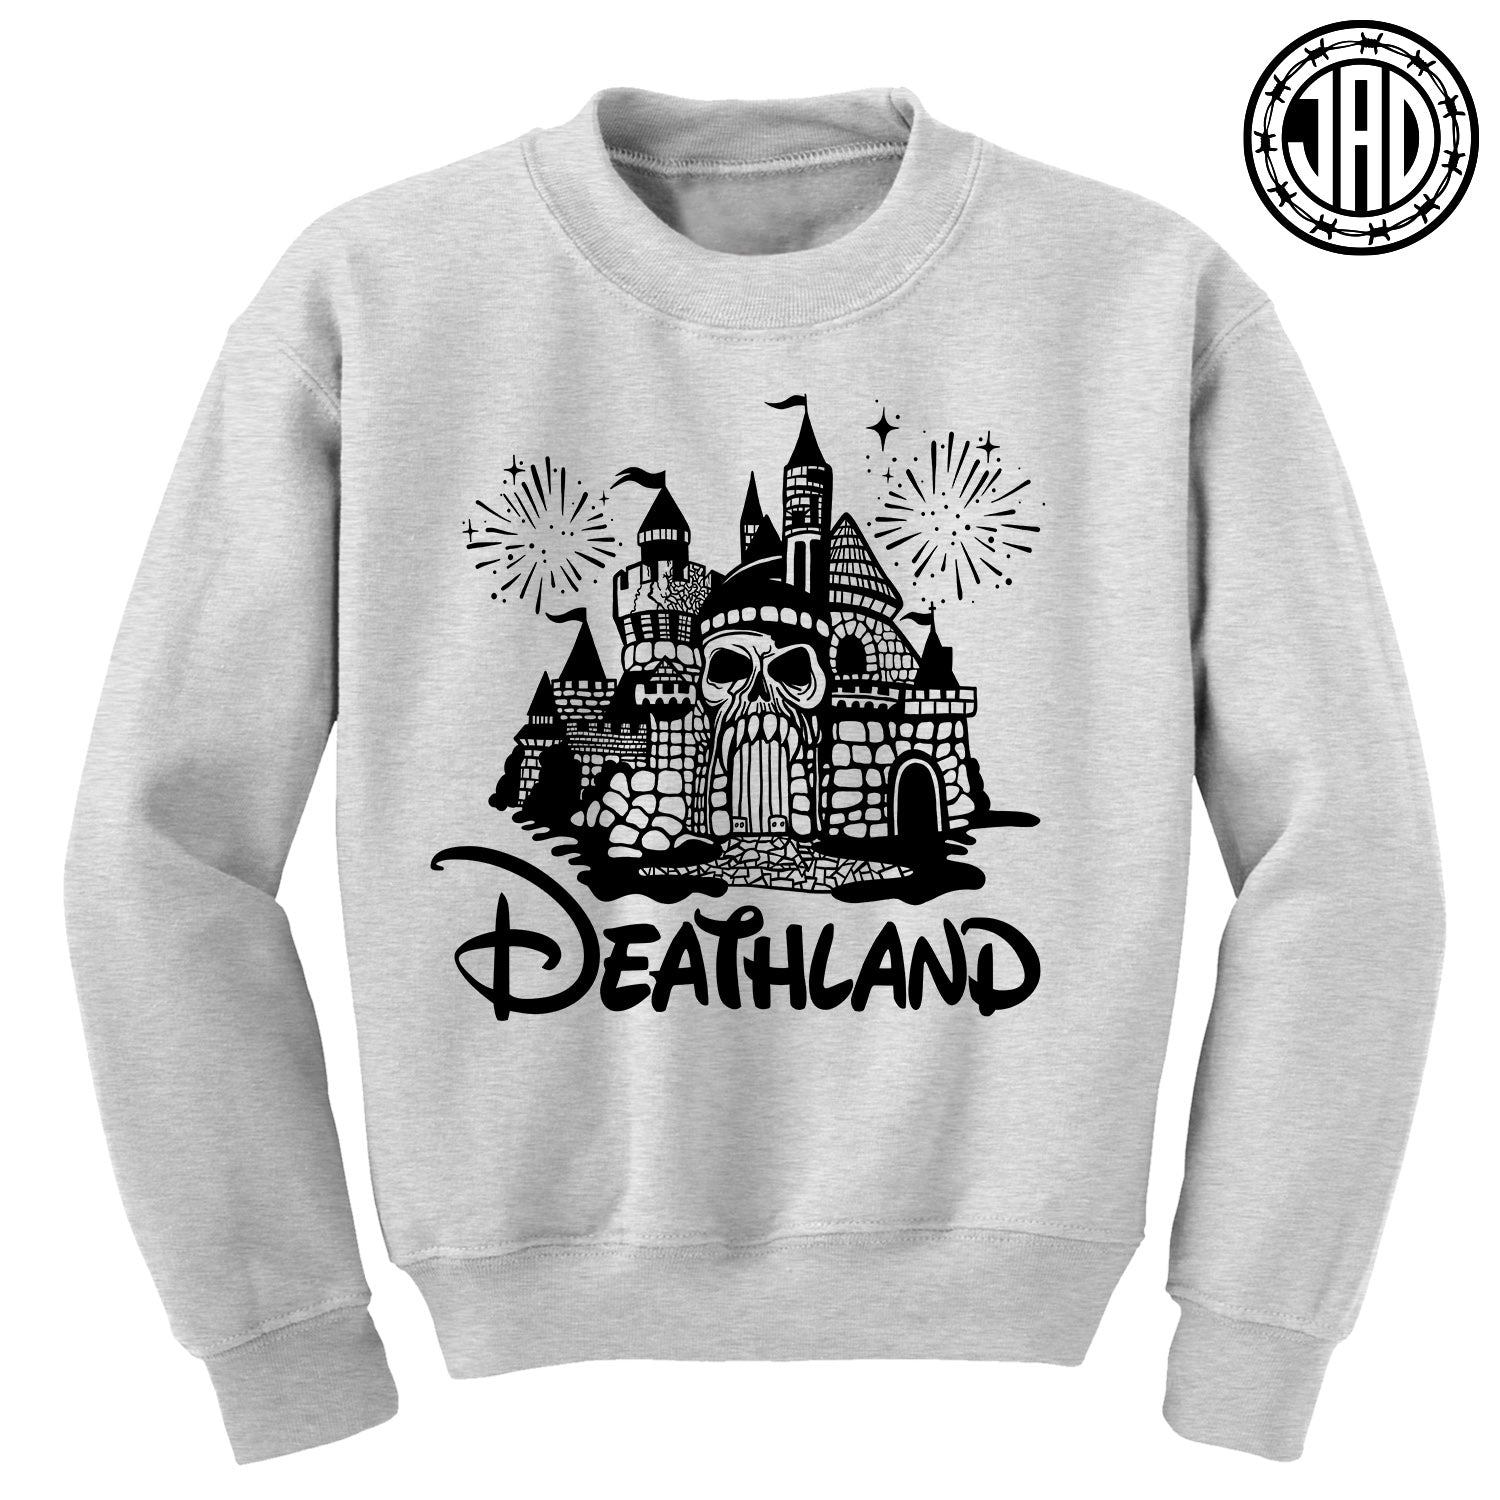 Deathland - Crewneck Sweater